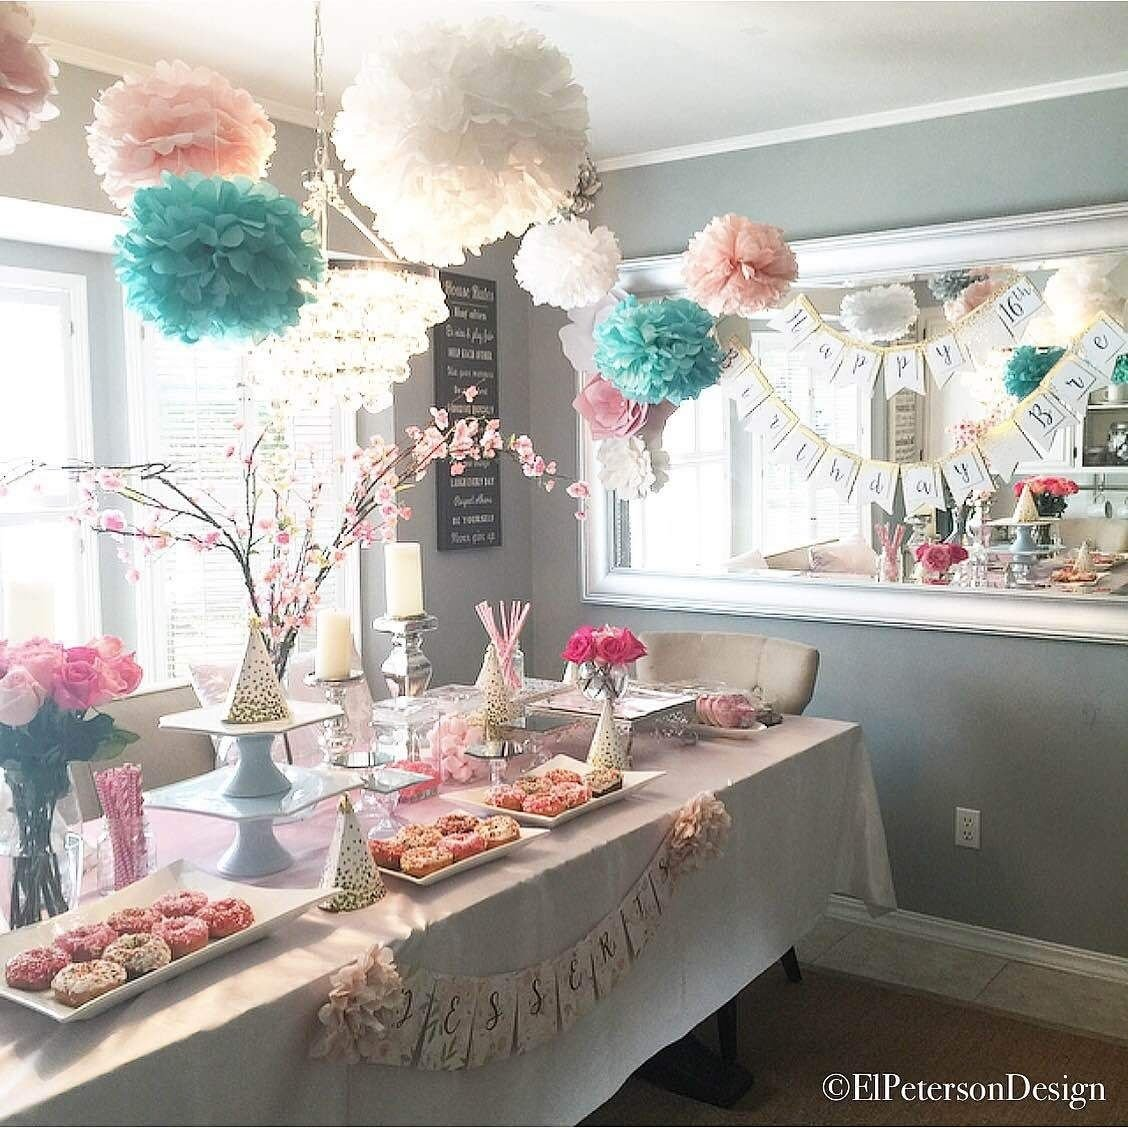 10 Nice Birthday Party Ideas For Teenage Girls how to plan a teenage girls birthday party elpetersondesign party 1 2020